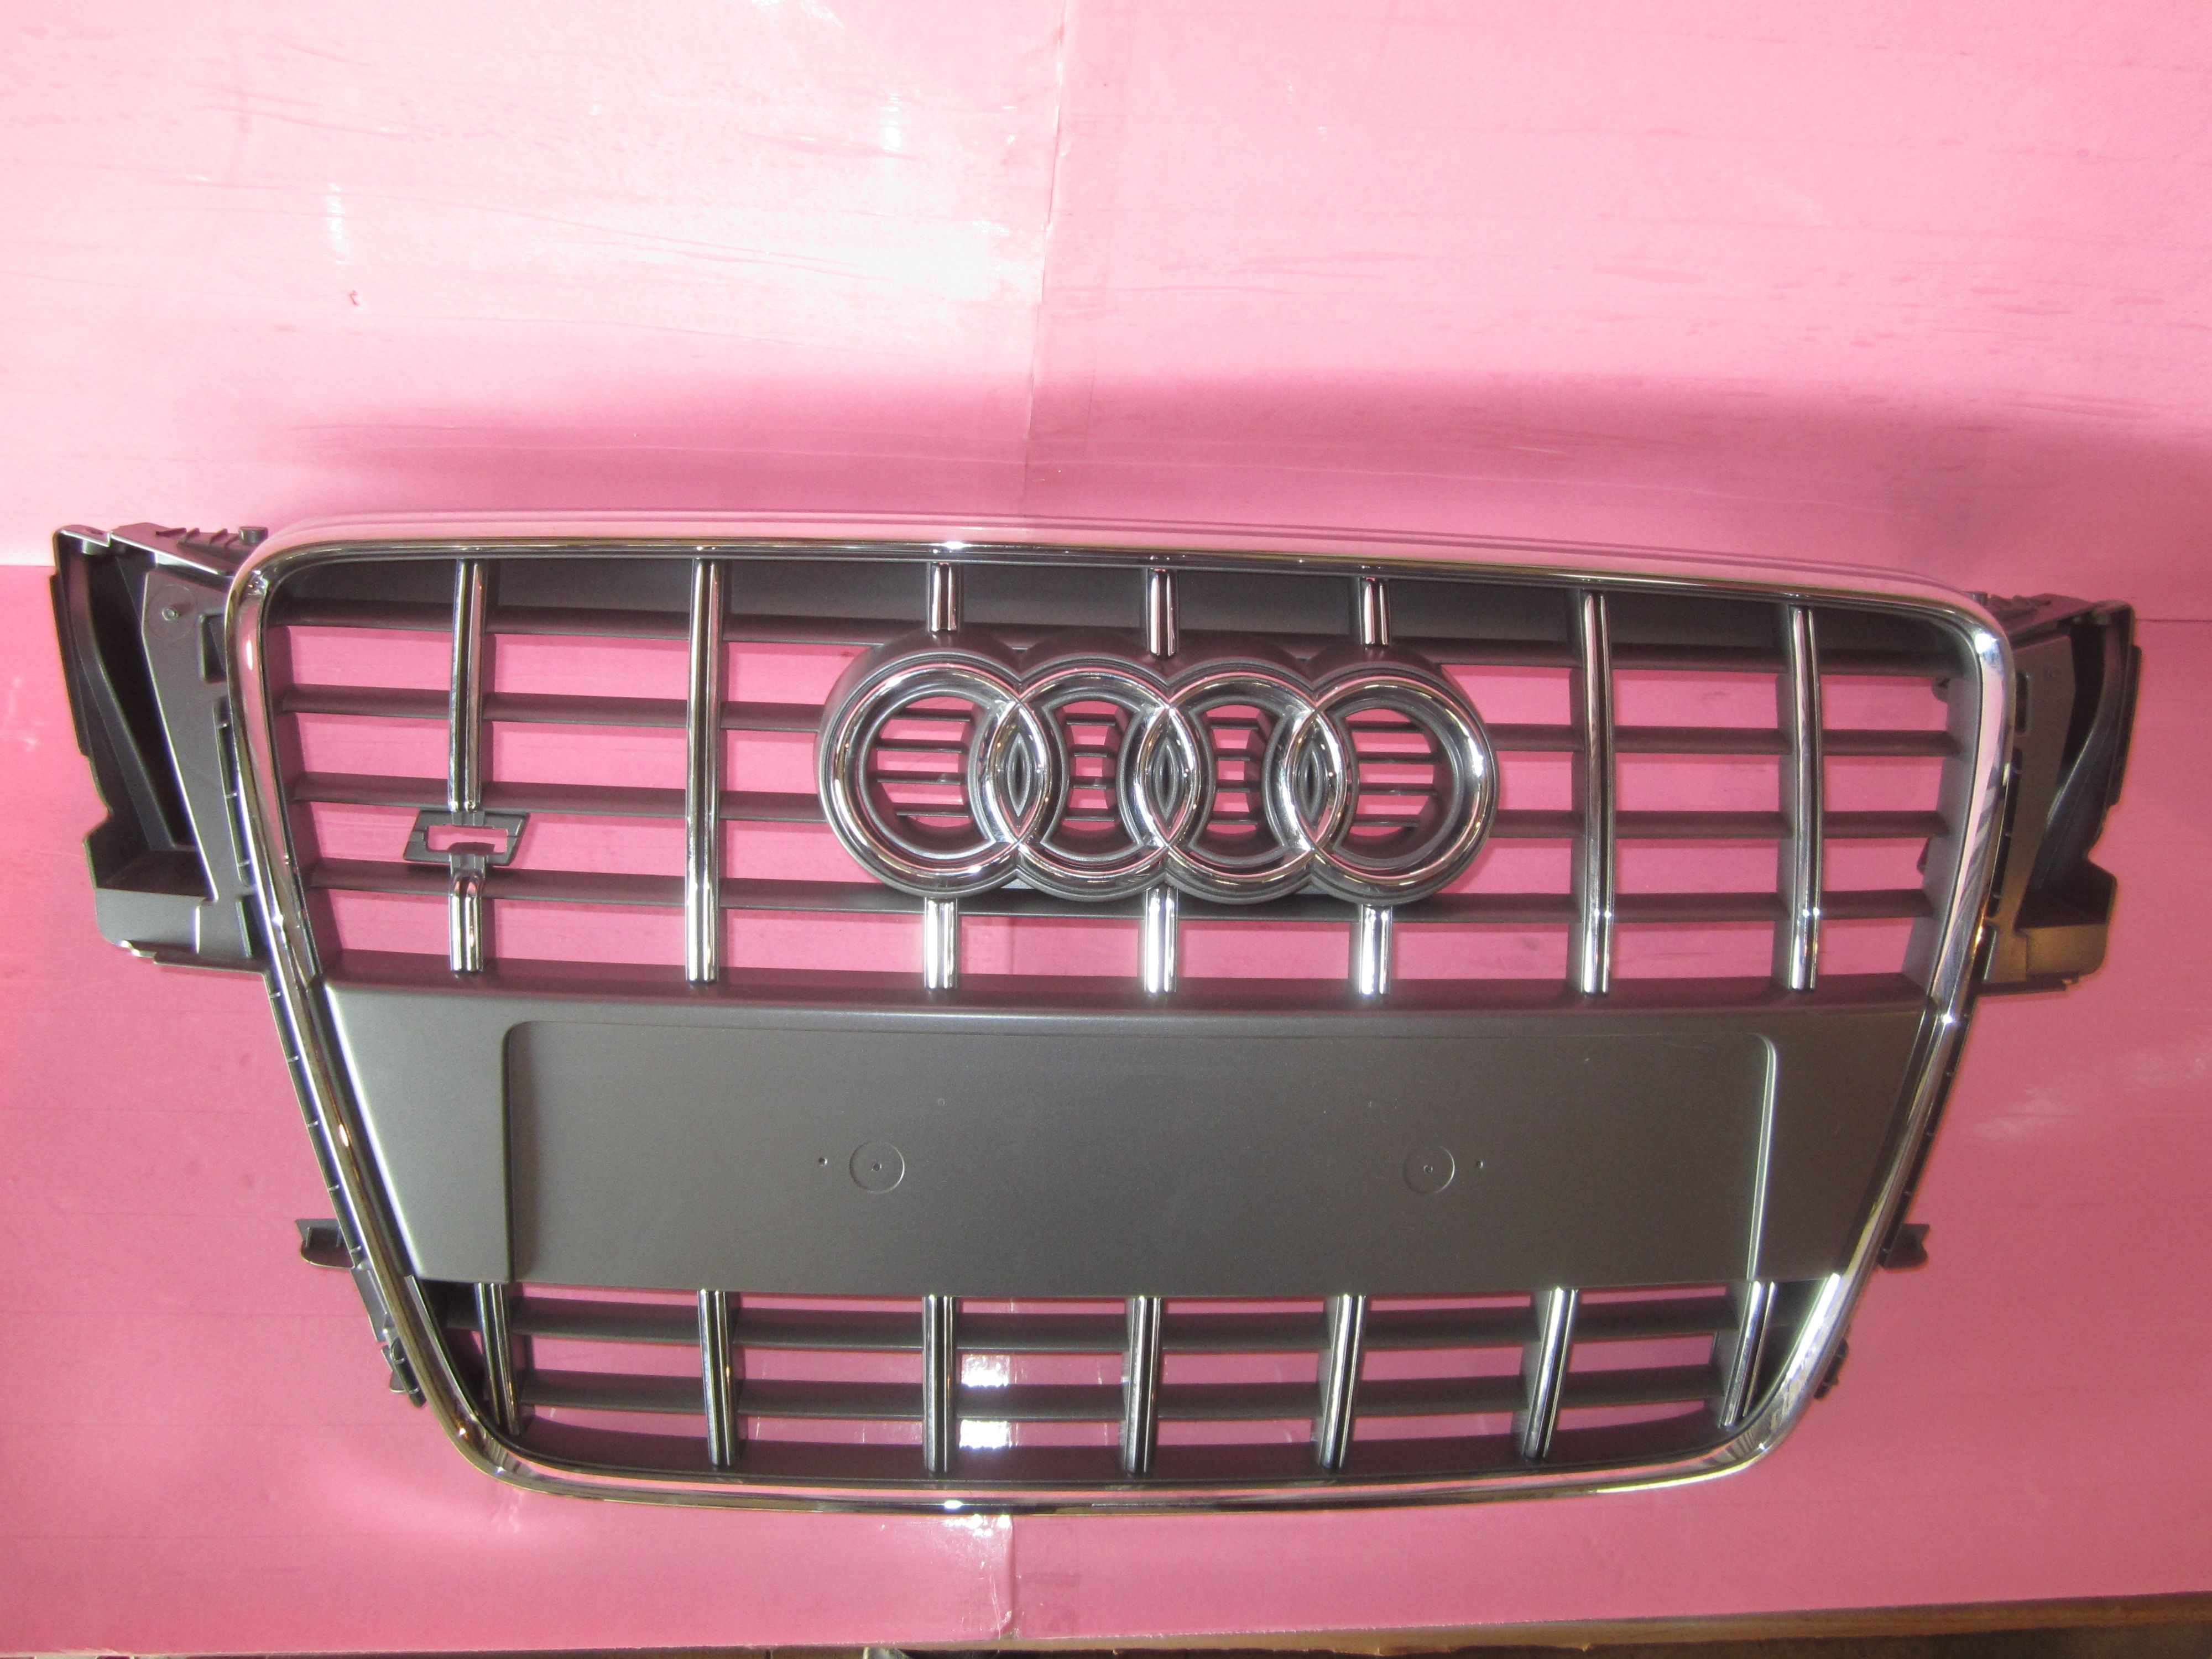 This Grille is for 2008 ~ 2009 Audi A4, Audi A5 used parts